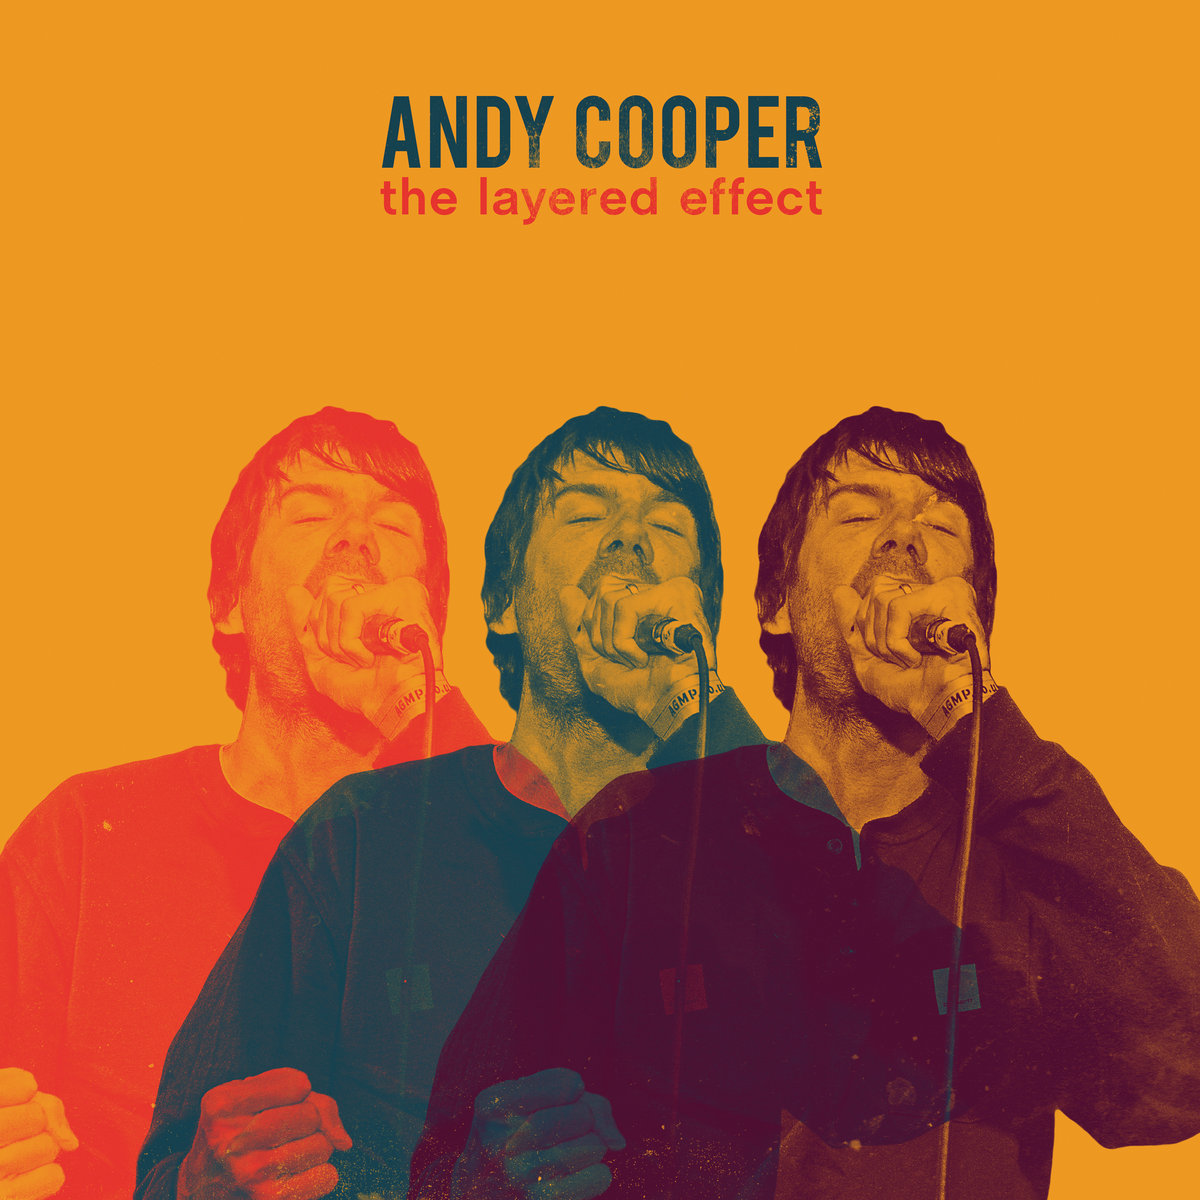 THE LAYERED EFFECT - ANDY COOPER